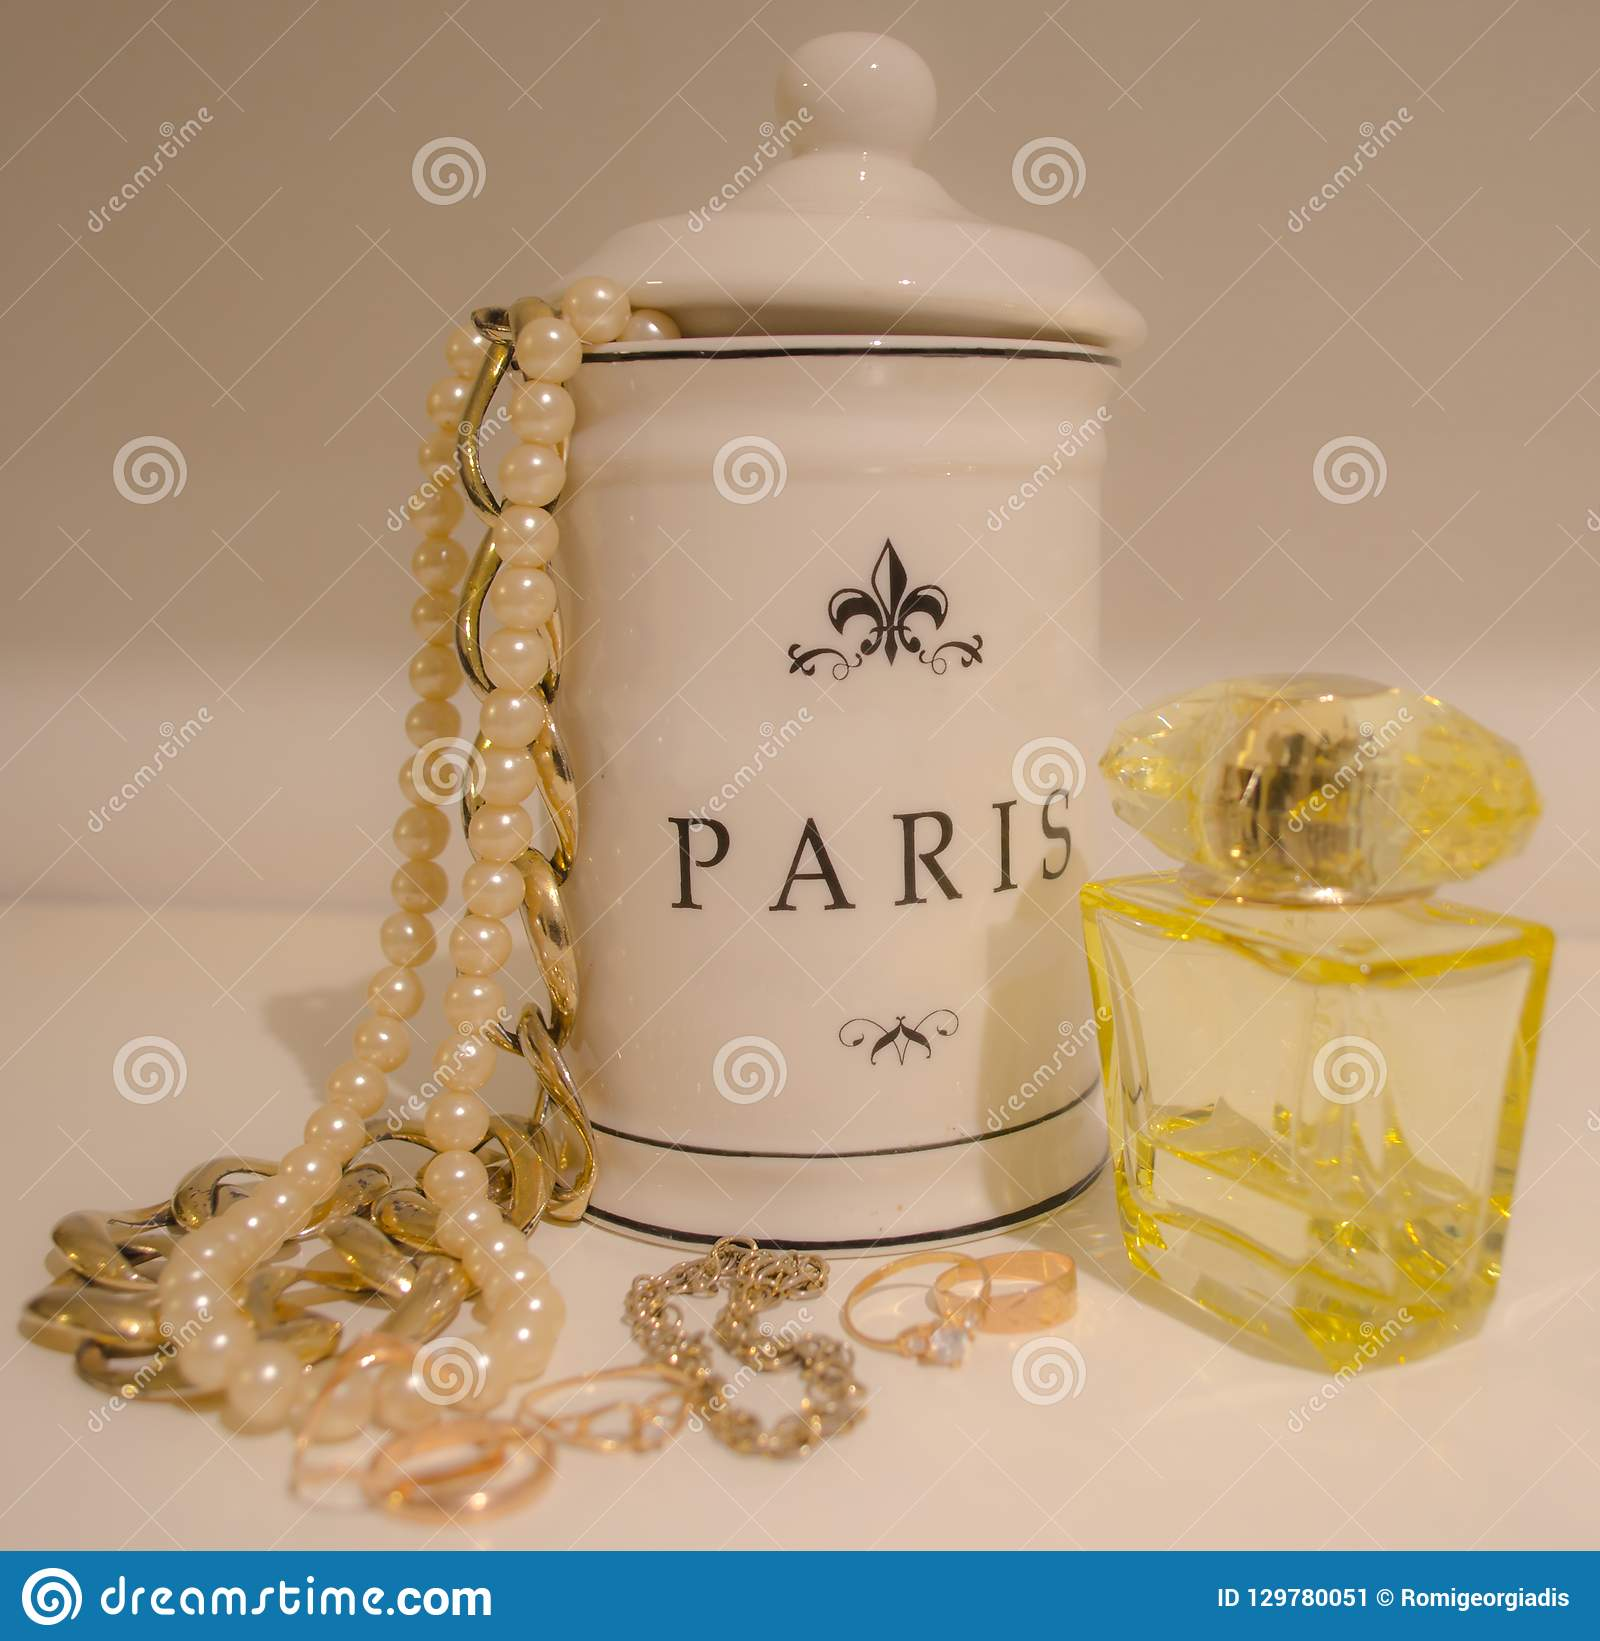 Gold jewelry and perfume for woman